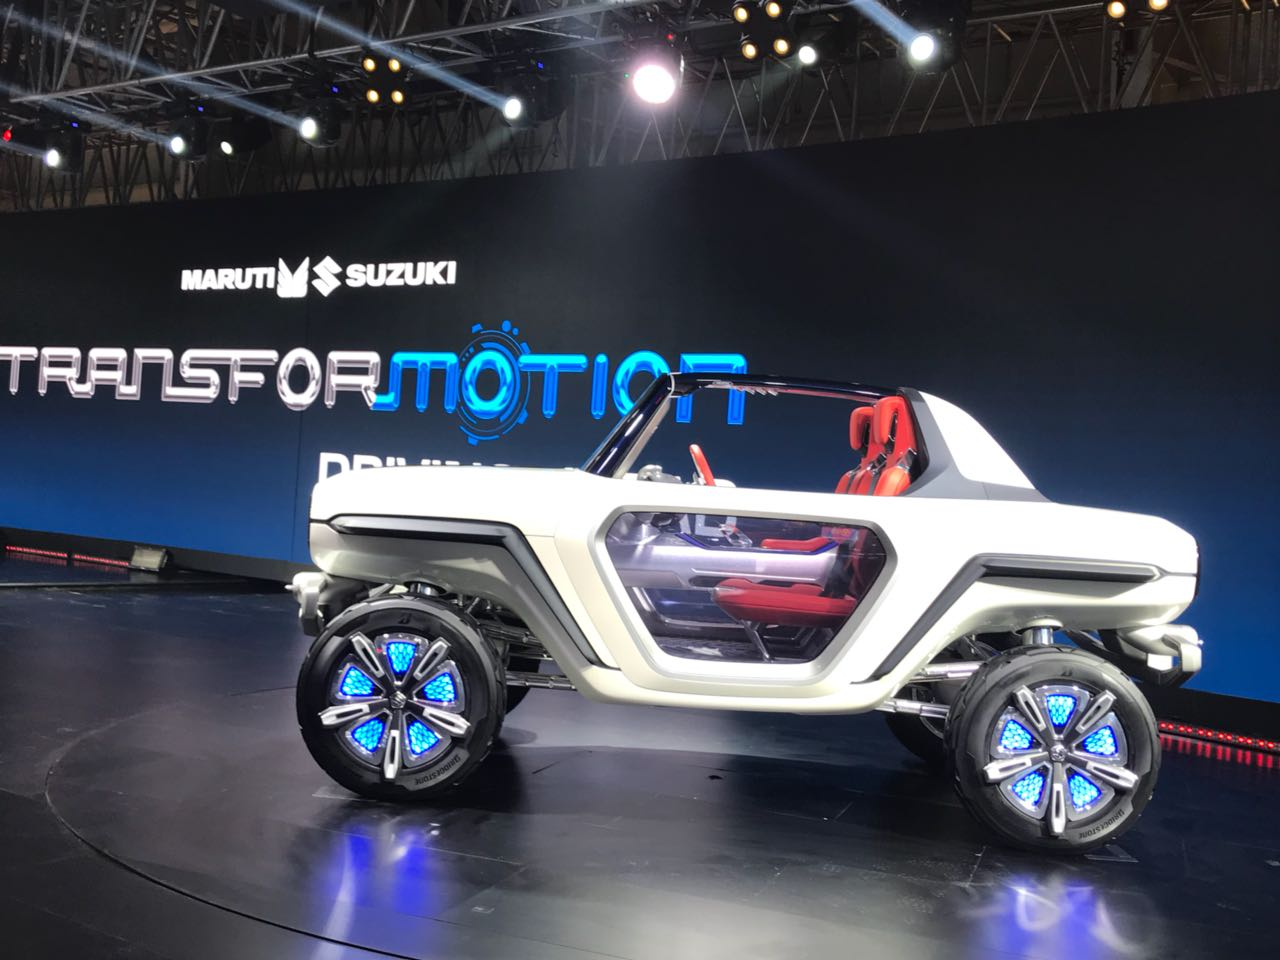 "<p>The Maruti Suzuki e-Survivor at Hall no.9, Stand no. N2 at the Auto Expo 2018. <a href=""http://overdrive.in/videos/suzuki-e-survivor-auto-expo-2018/"">Here's a walkaround video with the Maruti Suzuki e-Survivor</a>.</p>"